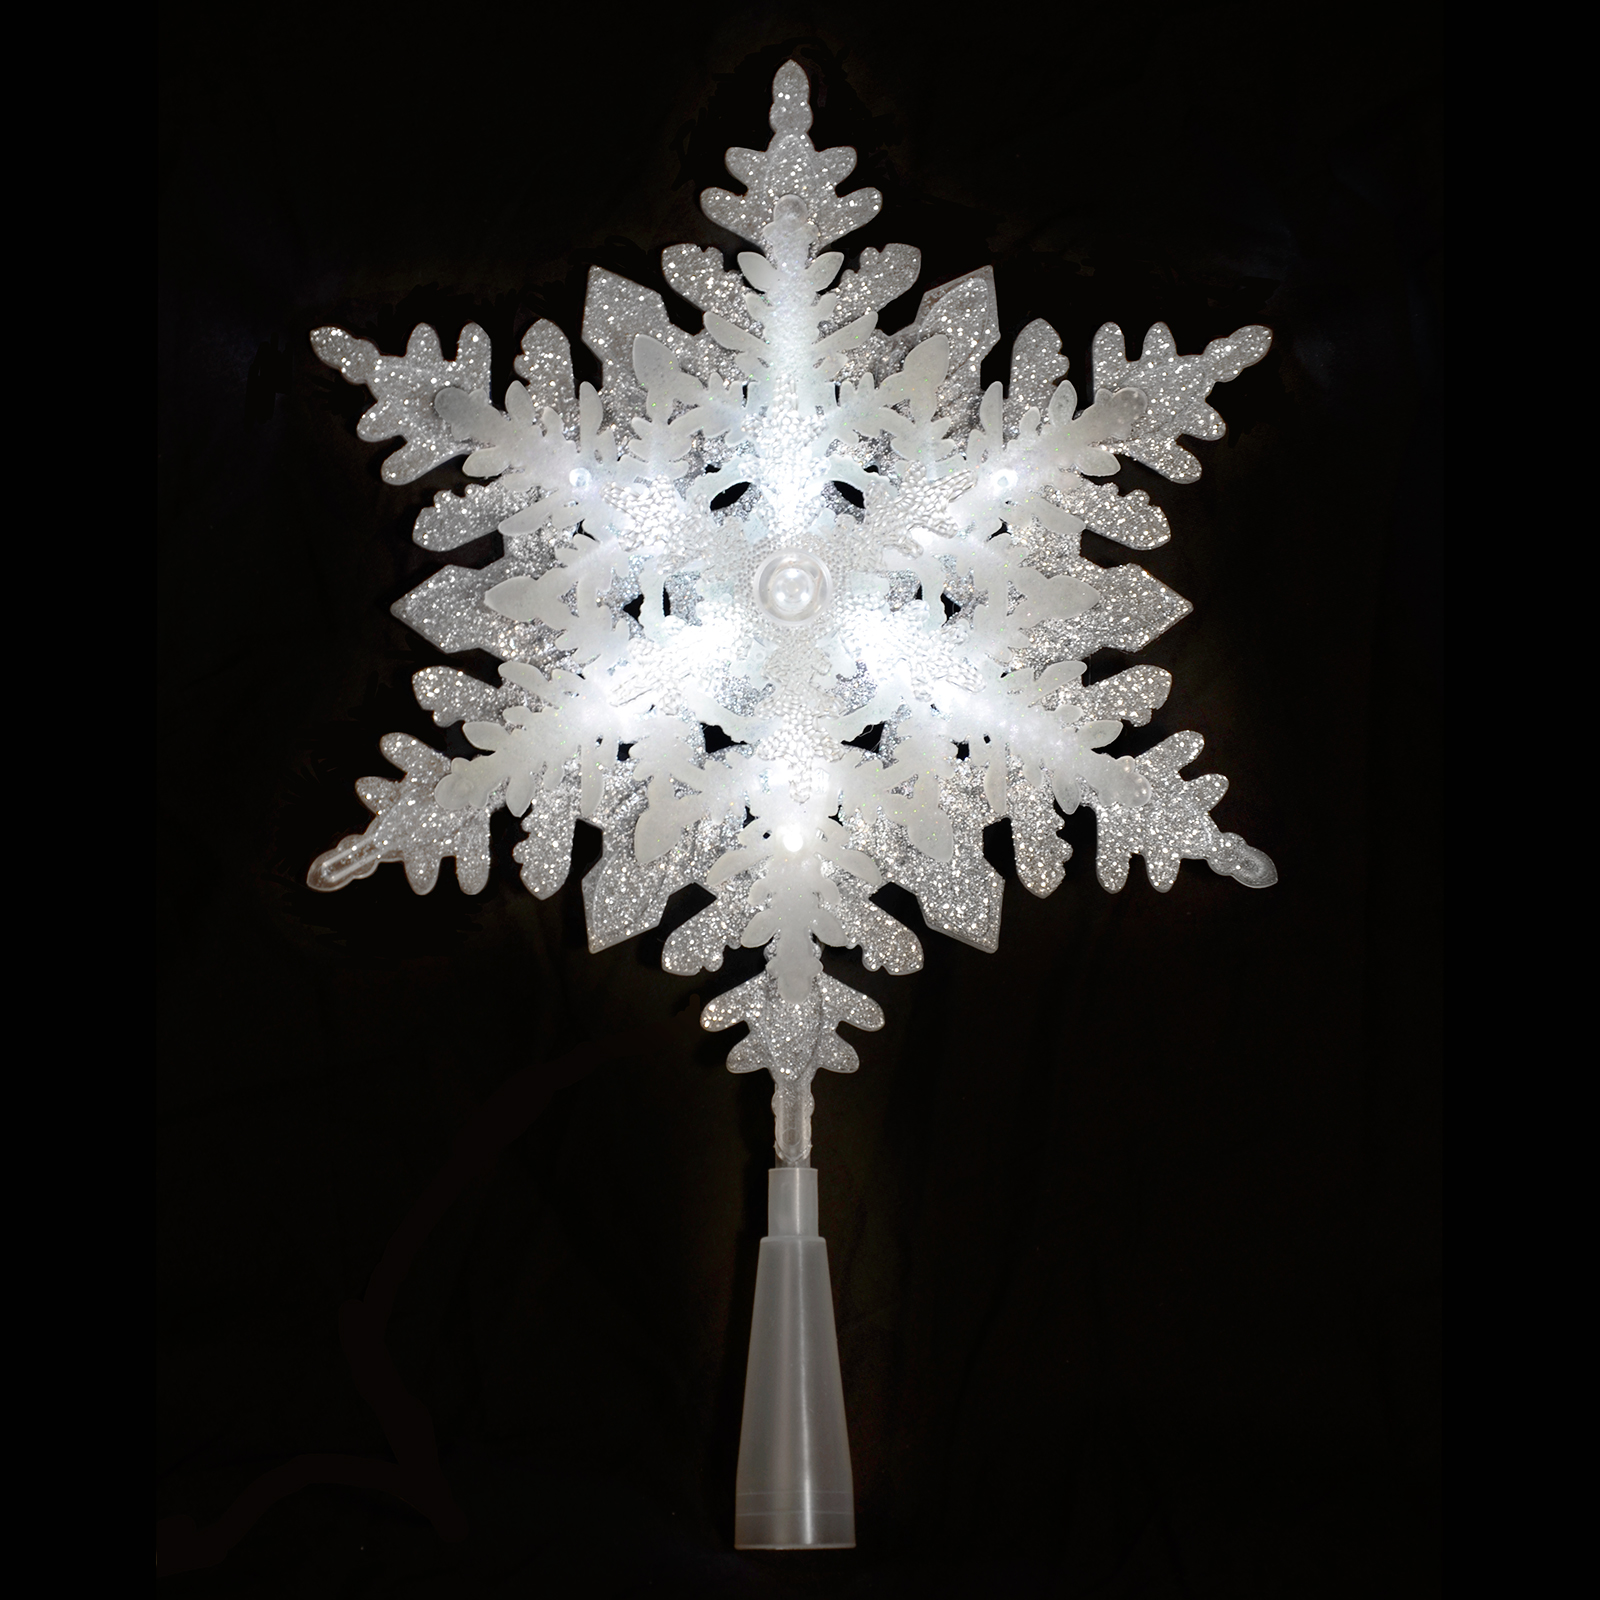 Light Up Silver Glitter Acrylic Snowflake Christmas Tree ...